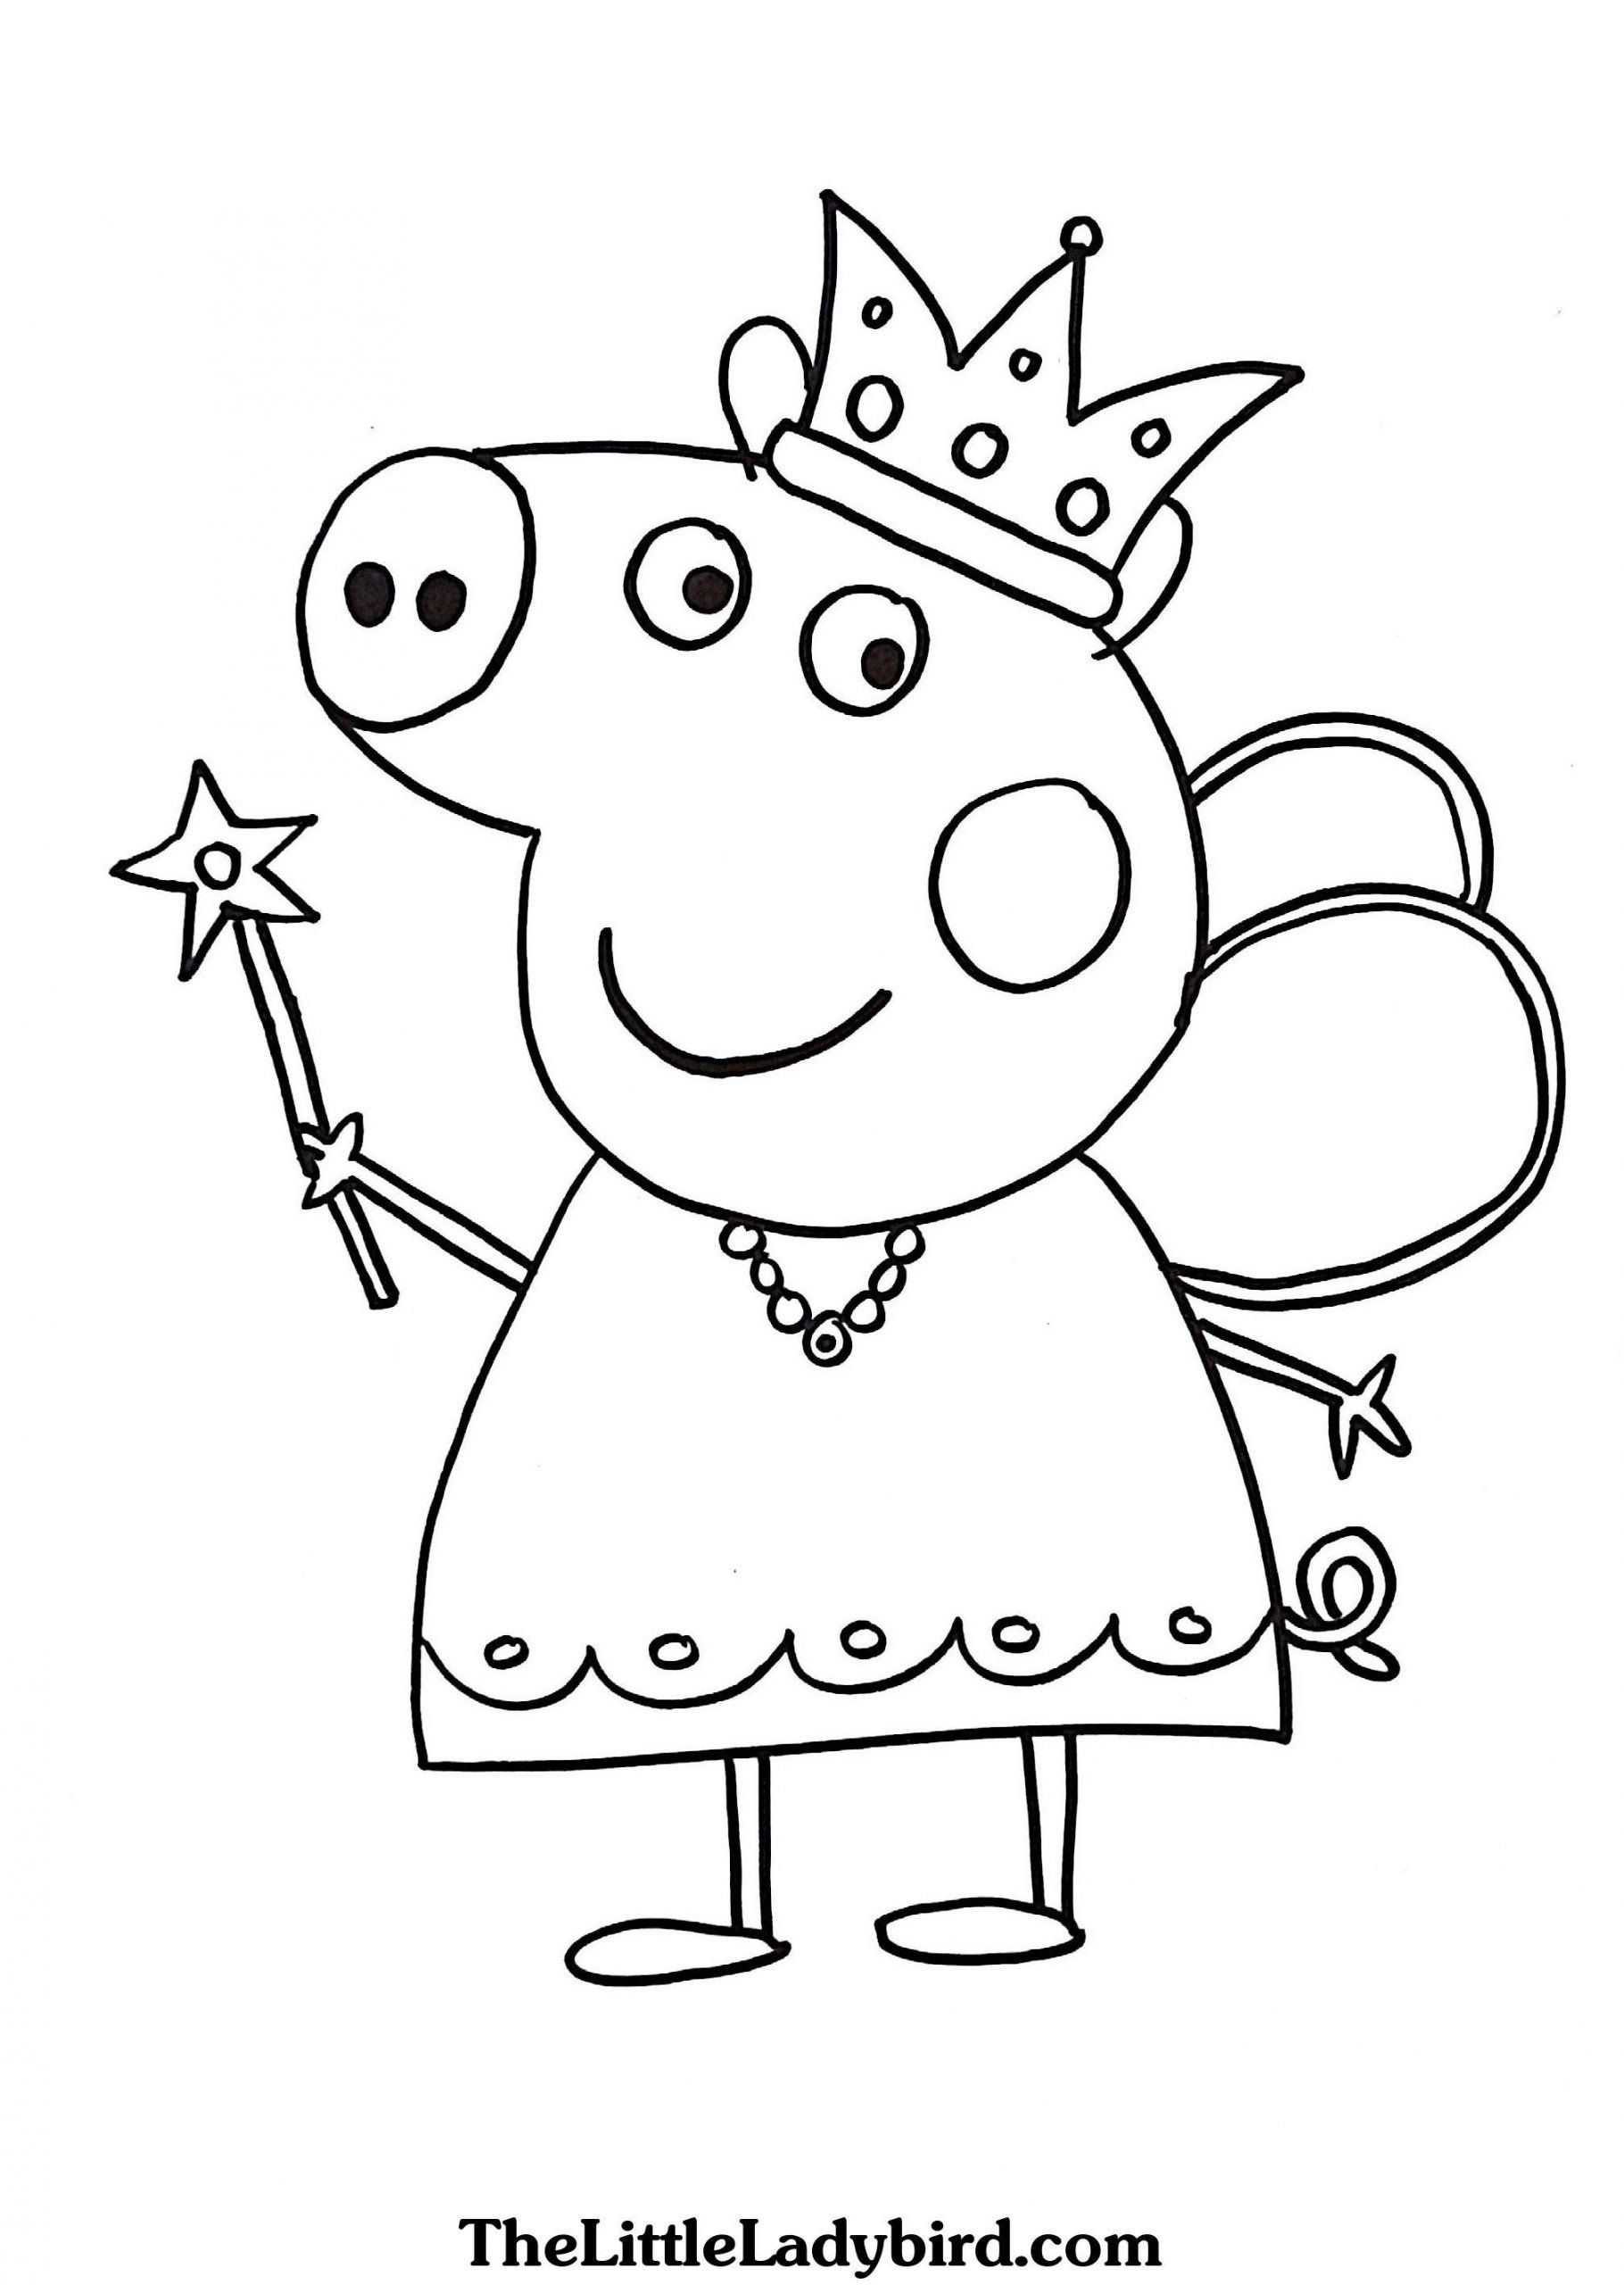 Coloring Pages For Kids Pdf Coloring Pages Coloring Ideas Colouring In For Peppa Pig Coloring Pages Peppa Pig Colouring Kids Coloring Books